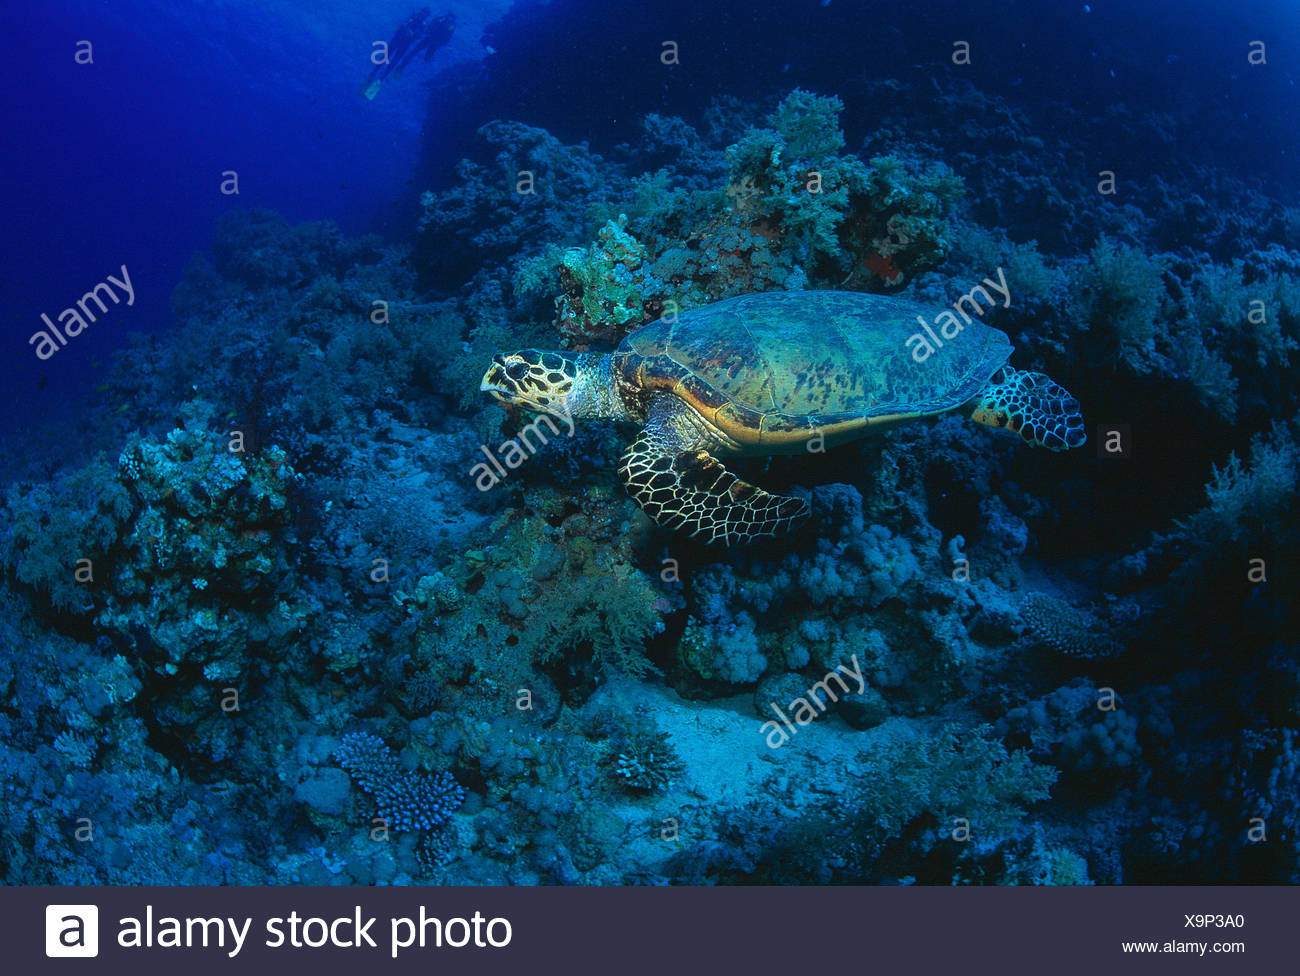 Egypt. Red Sea. Wildlife. Hawksbill Turtle underwater, swimming over coral reef. - Stock Image